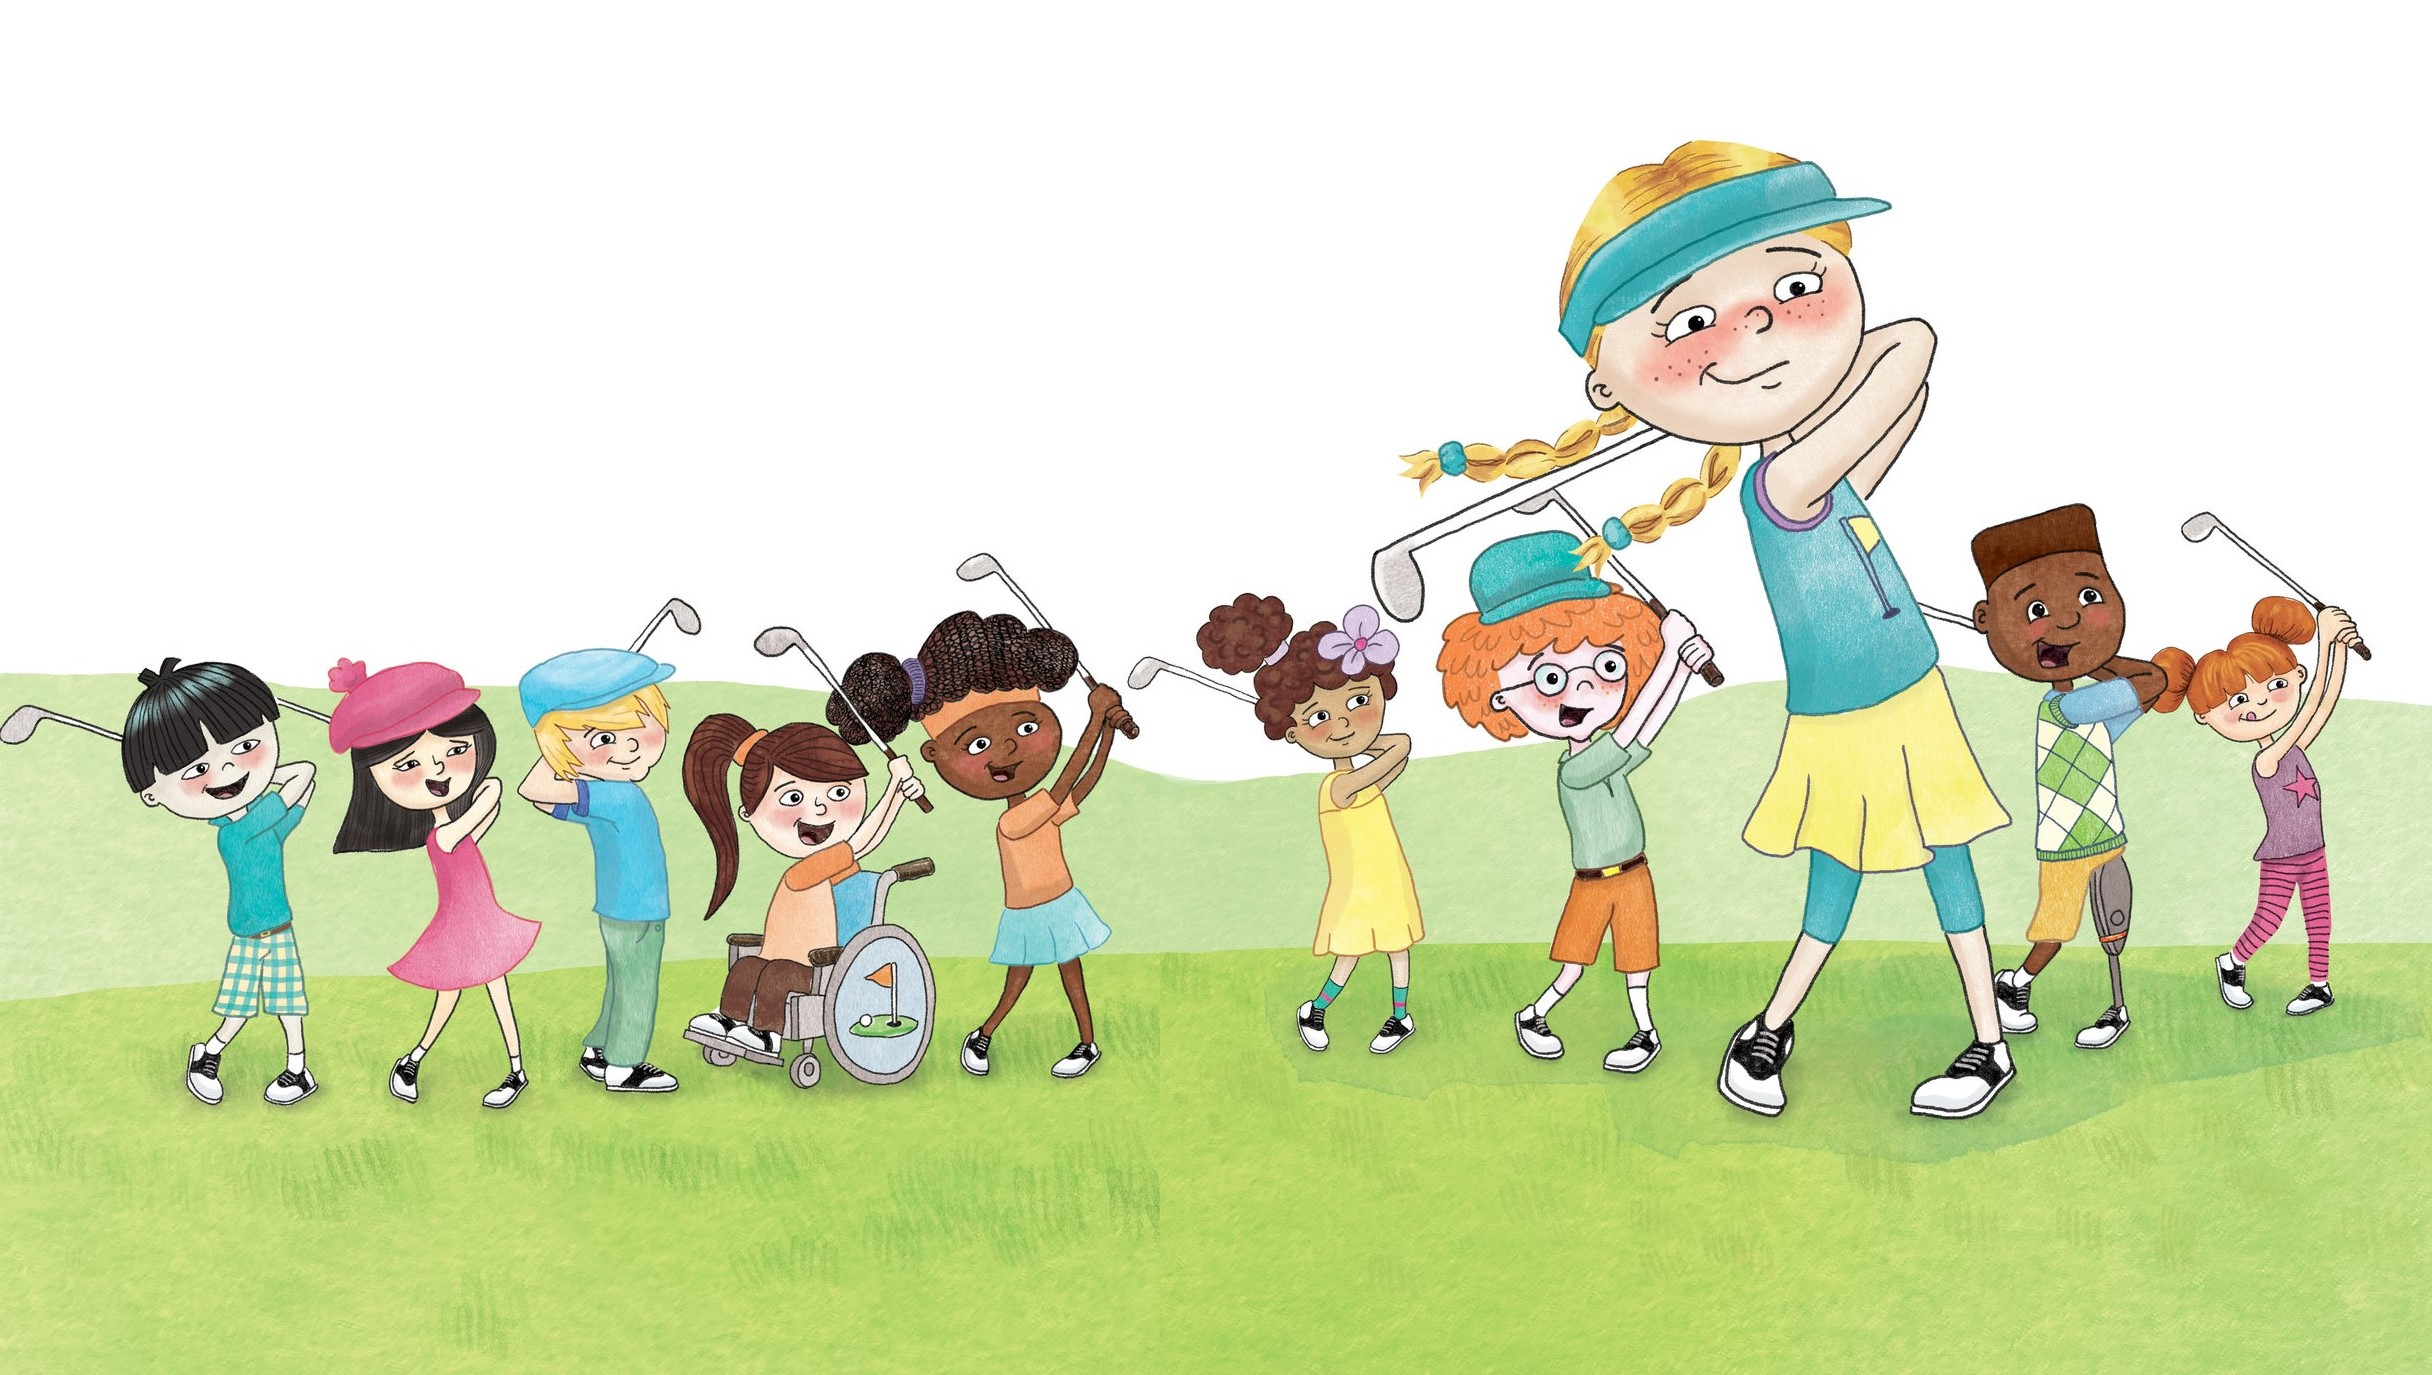 One Two Follow Through is a golf book for kids by Mary Jacobs